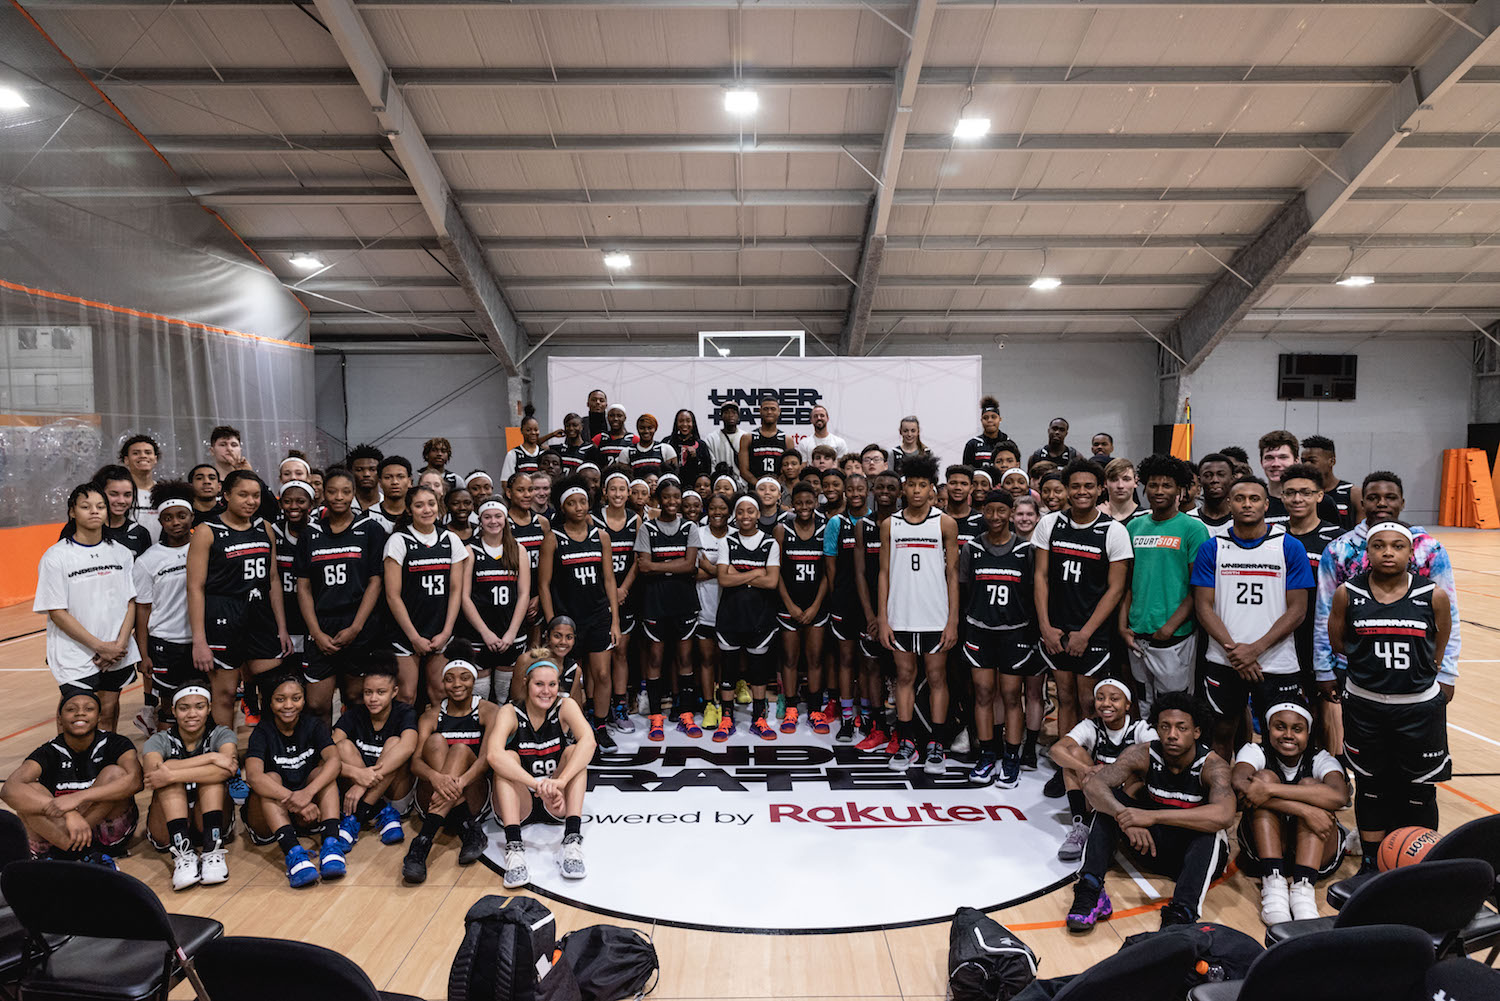 Season 2 of the Underrated Tour Powered by Rakuten got off to a strong start with two days of elite training and pro-level learning experiences in Chicago.